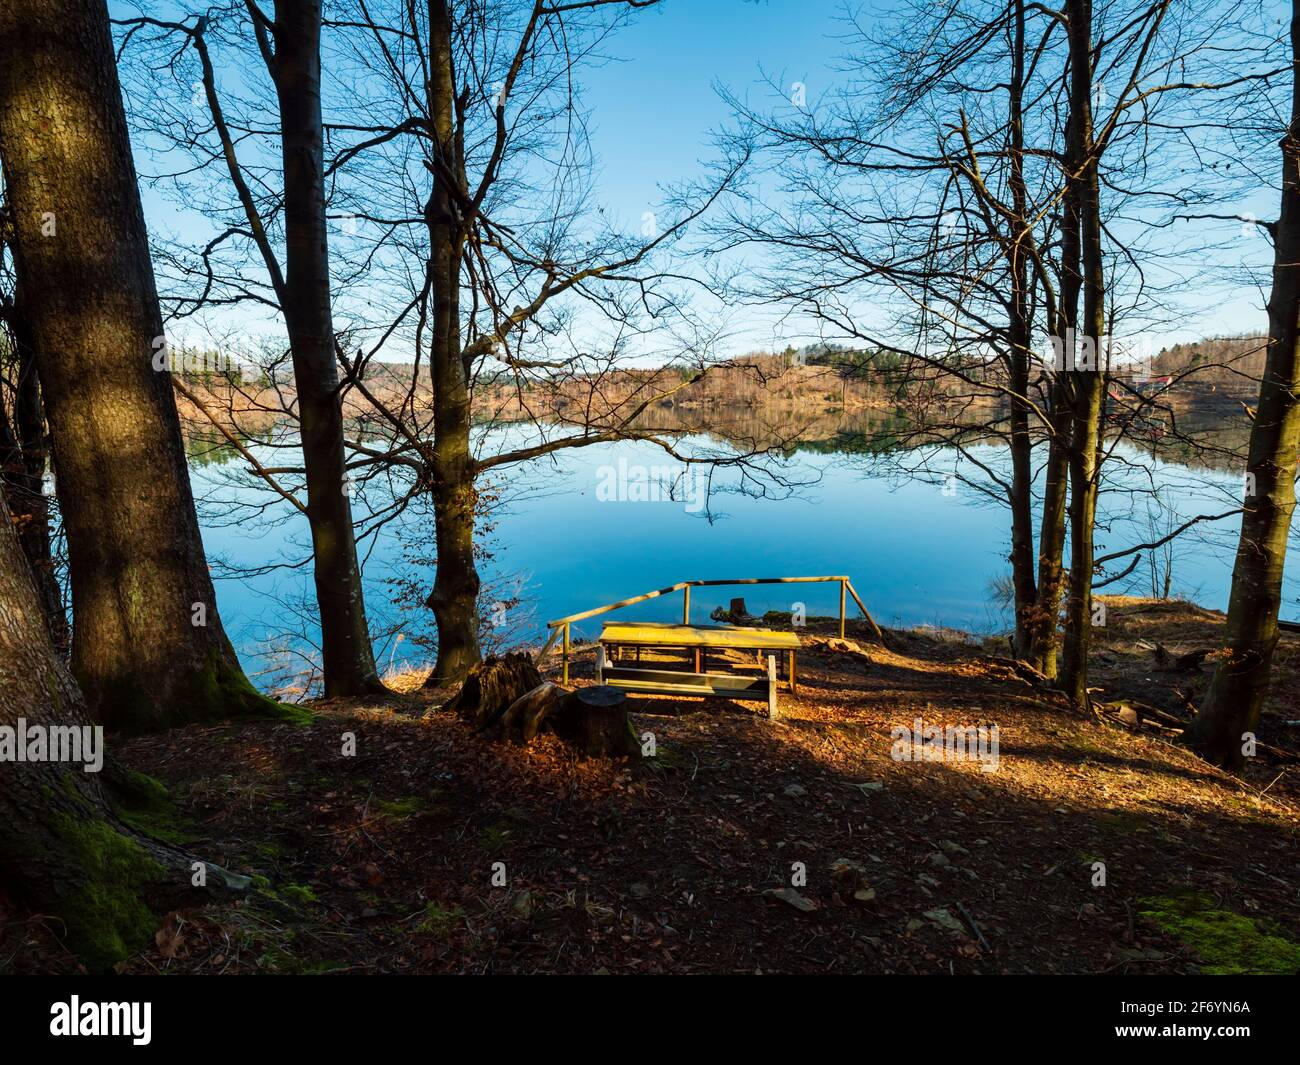 Picturesque peaceful tranquility zen on Lokve lake in Croatia Europe Stock Photo